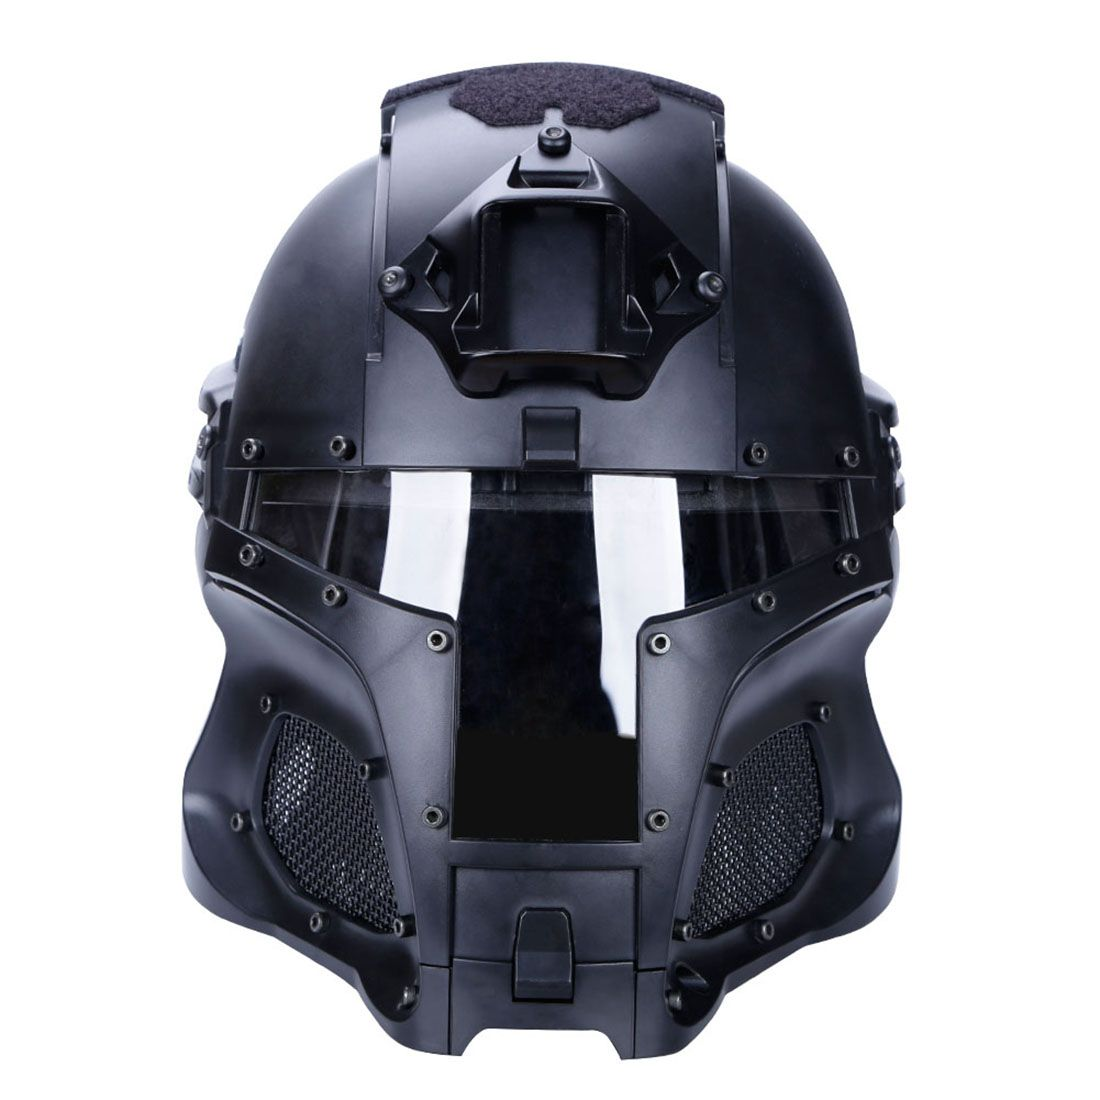 NFSTRIKE Military Tactical Accessories WST Medieval Iron Knight Tactics Helmet For Outdoor Activity Game - Black